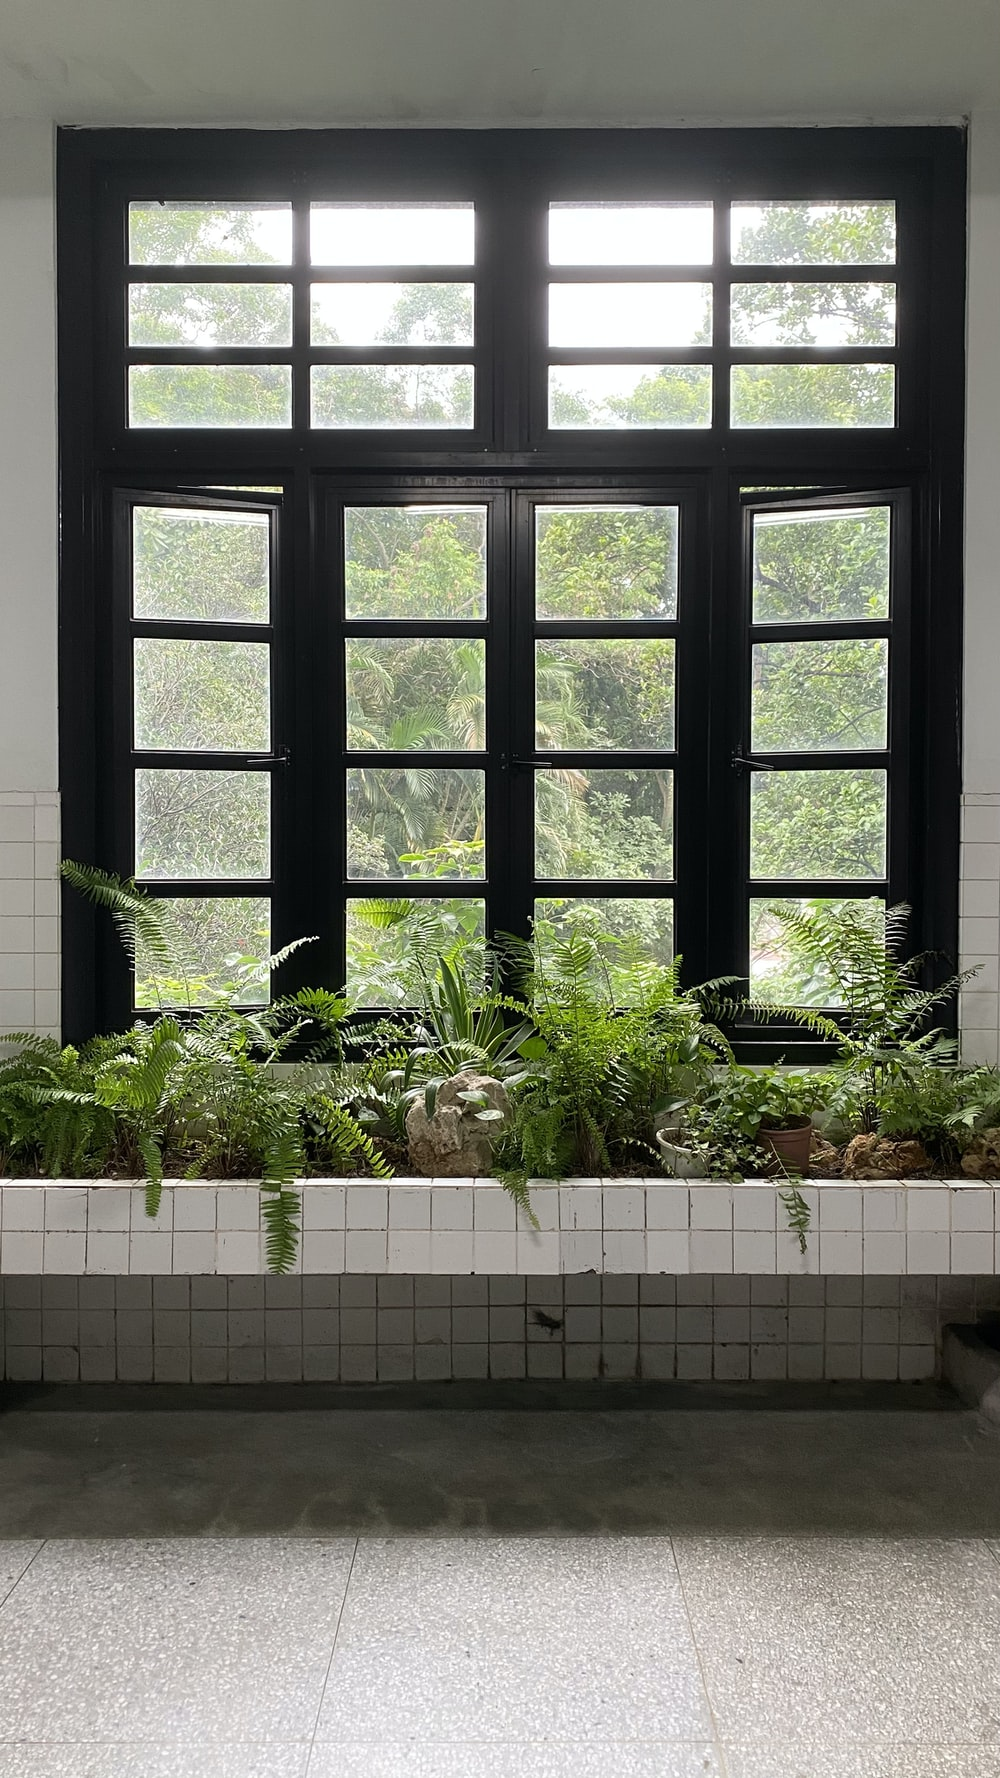 green plants on white ceramic pot beside black wooden window